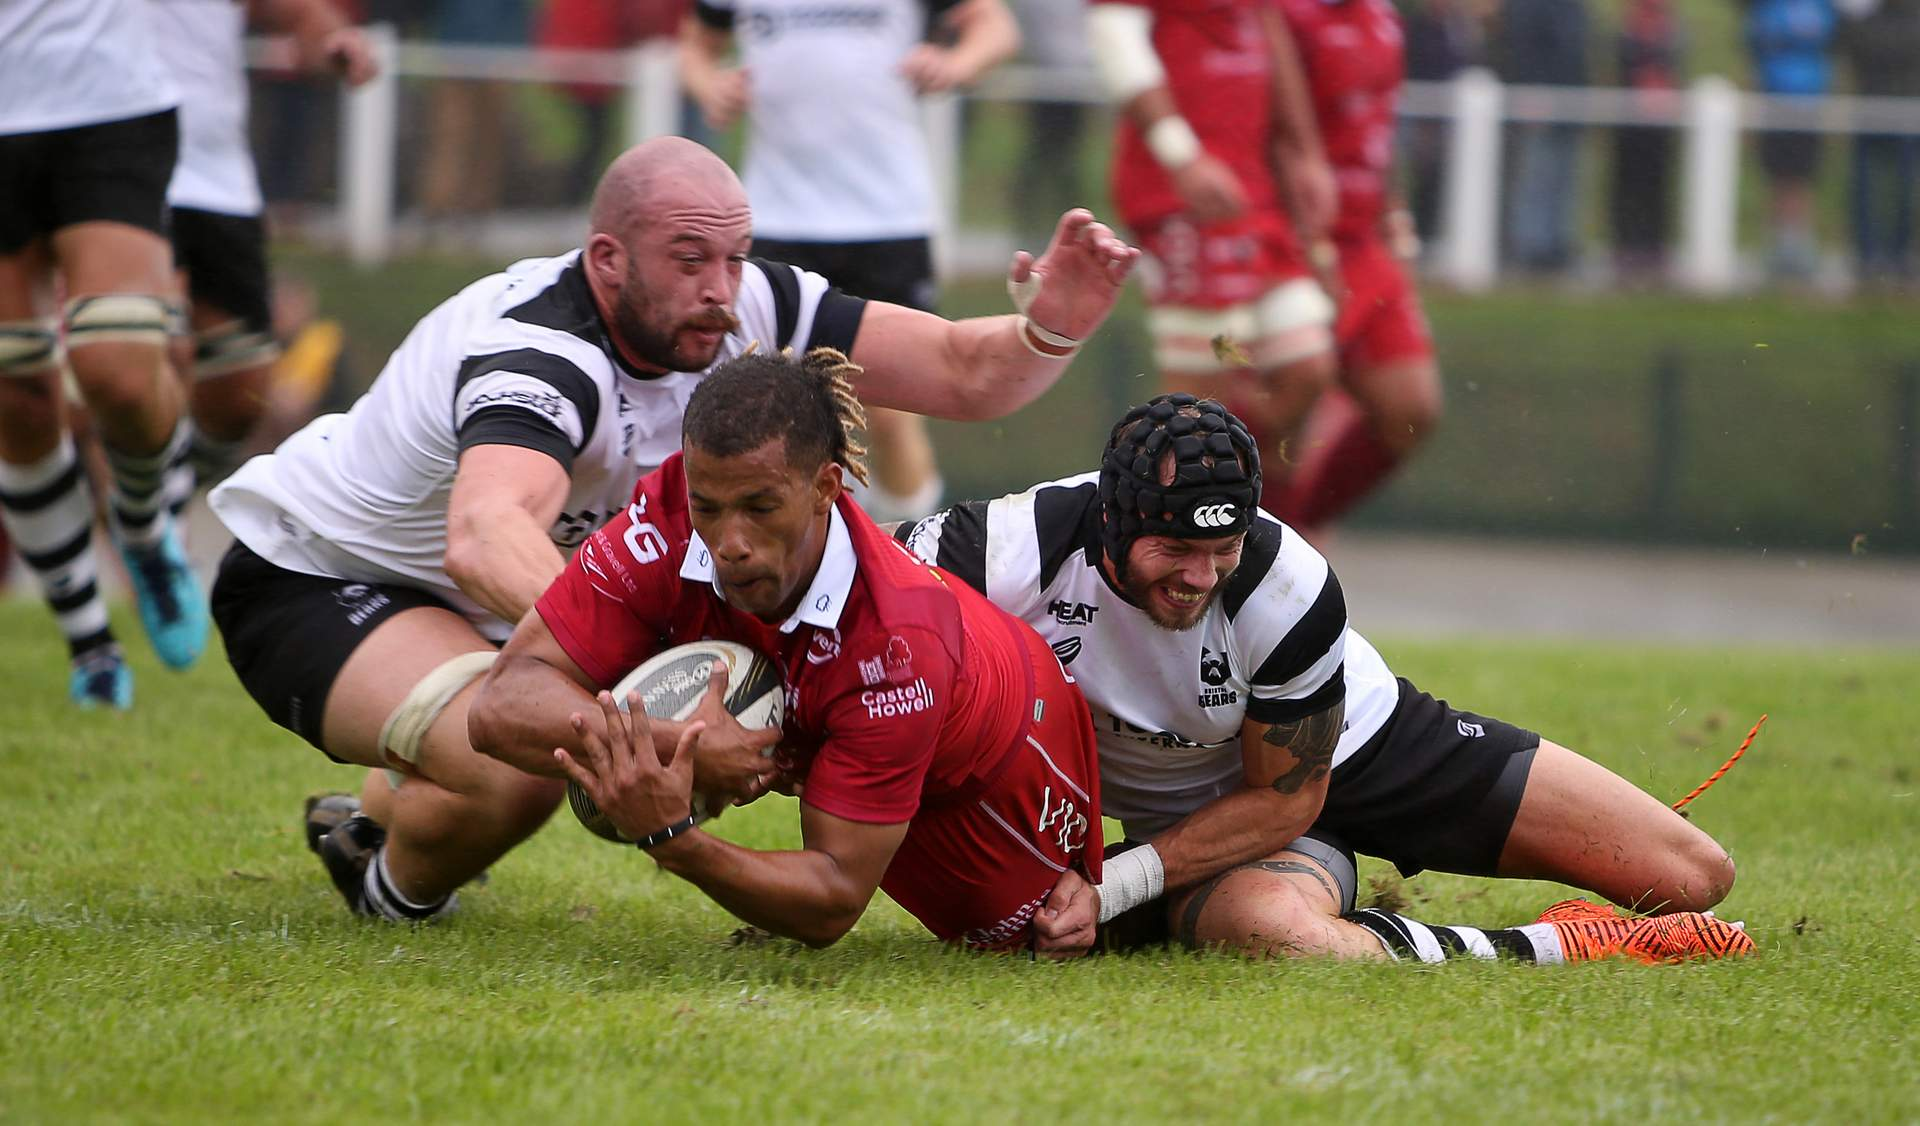 REPORT: Scarlets come from behind to beat Bristol